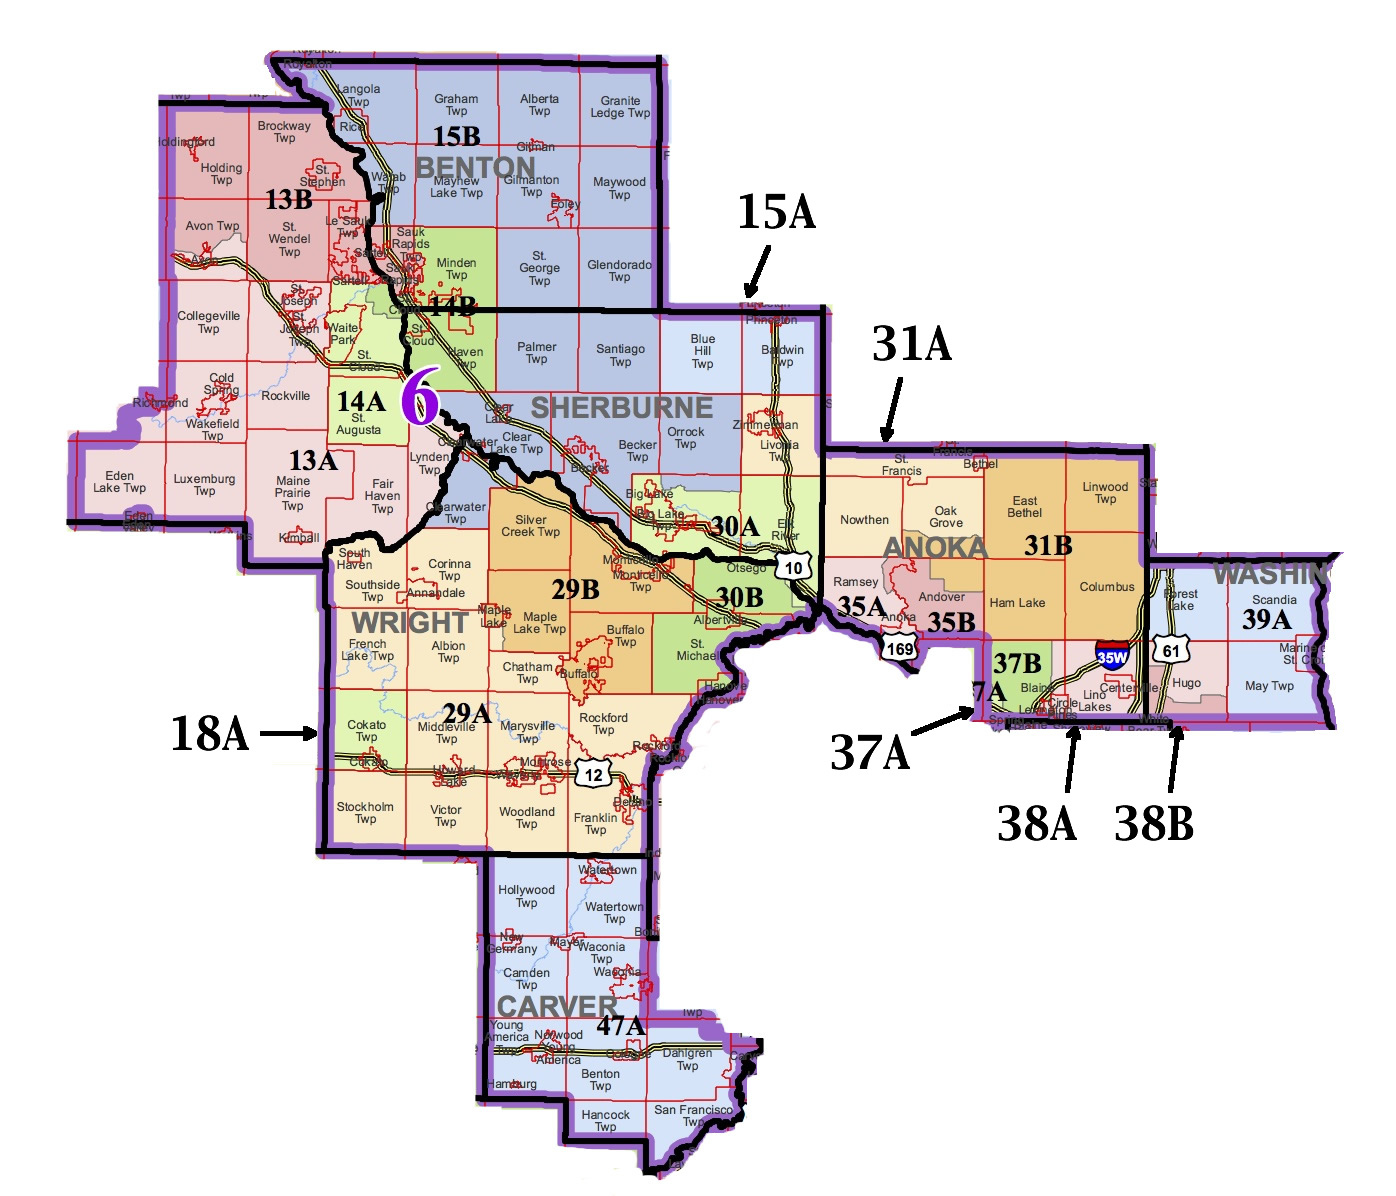 6th Congressional District - Albertville, Andover, Annandale, Anoka, Avon, Becker, Big Lake, Blaine, Buffalo, Carver, Circle Pines, Clear Lake, Clearwater, Cokato, Cold Spring, Cologne, Columbus, Coon Rapids, Delano, East Bethel, Elk River, Foley, Forest Lake, Ham Lake, Howard Lake, Hugo, Kimball, Lino Lakes, Maple Lake, Marine on St. Croix, Monticello, Montrose, Norwood Young America, Oak Grove, Oak Park, Otsego, Ramsey, Rice, Richmond, Rockford, Rockville, Sartell, Sauk Rapids, Scandia, Silver Creek, St. Augusta, St. Cloud, St. Francis, St. Joseph, St. Michael, Two Rivers, Waconia, Waite Park, Watertown, Zimmerman.